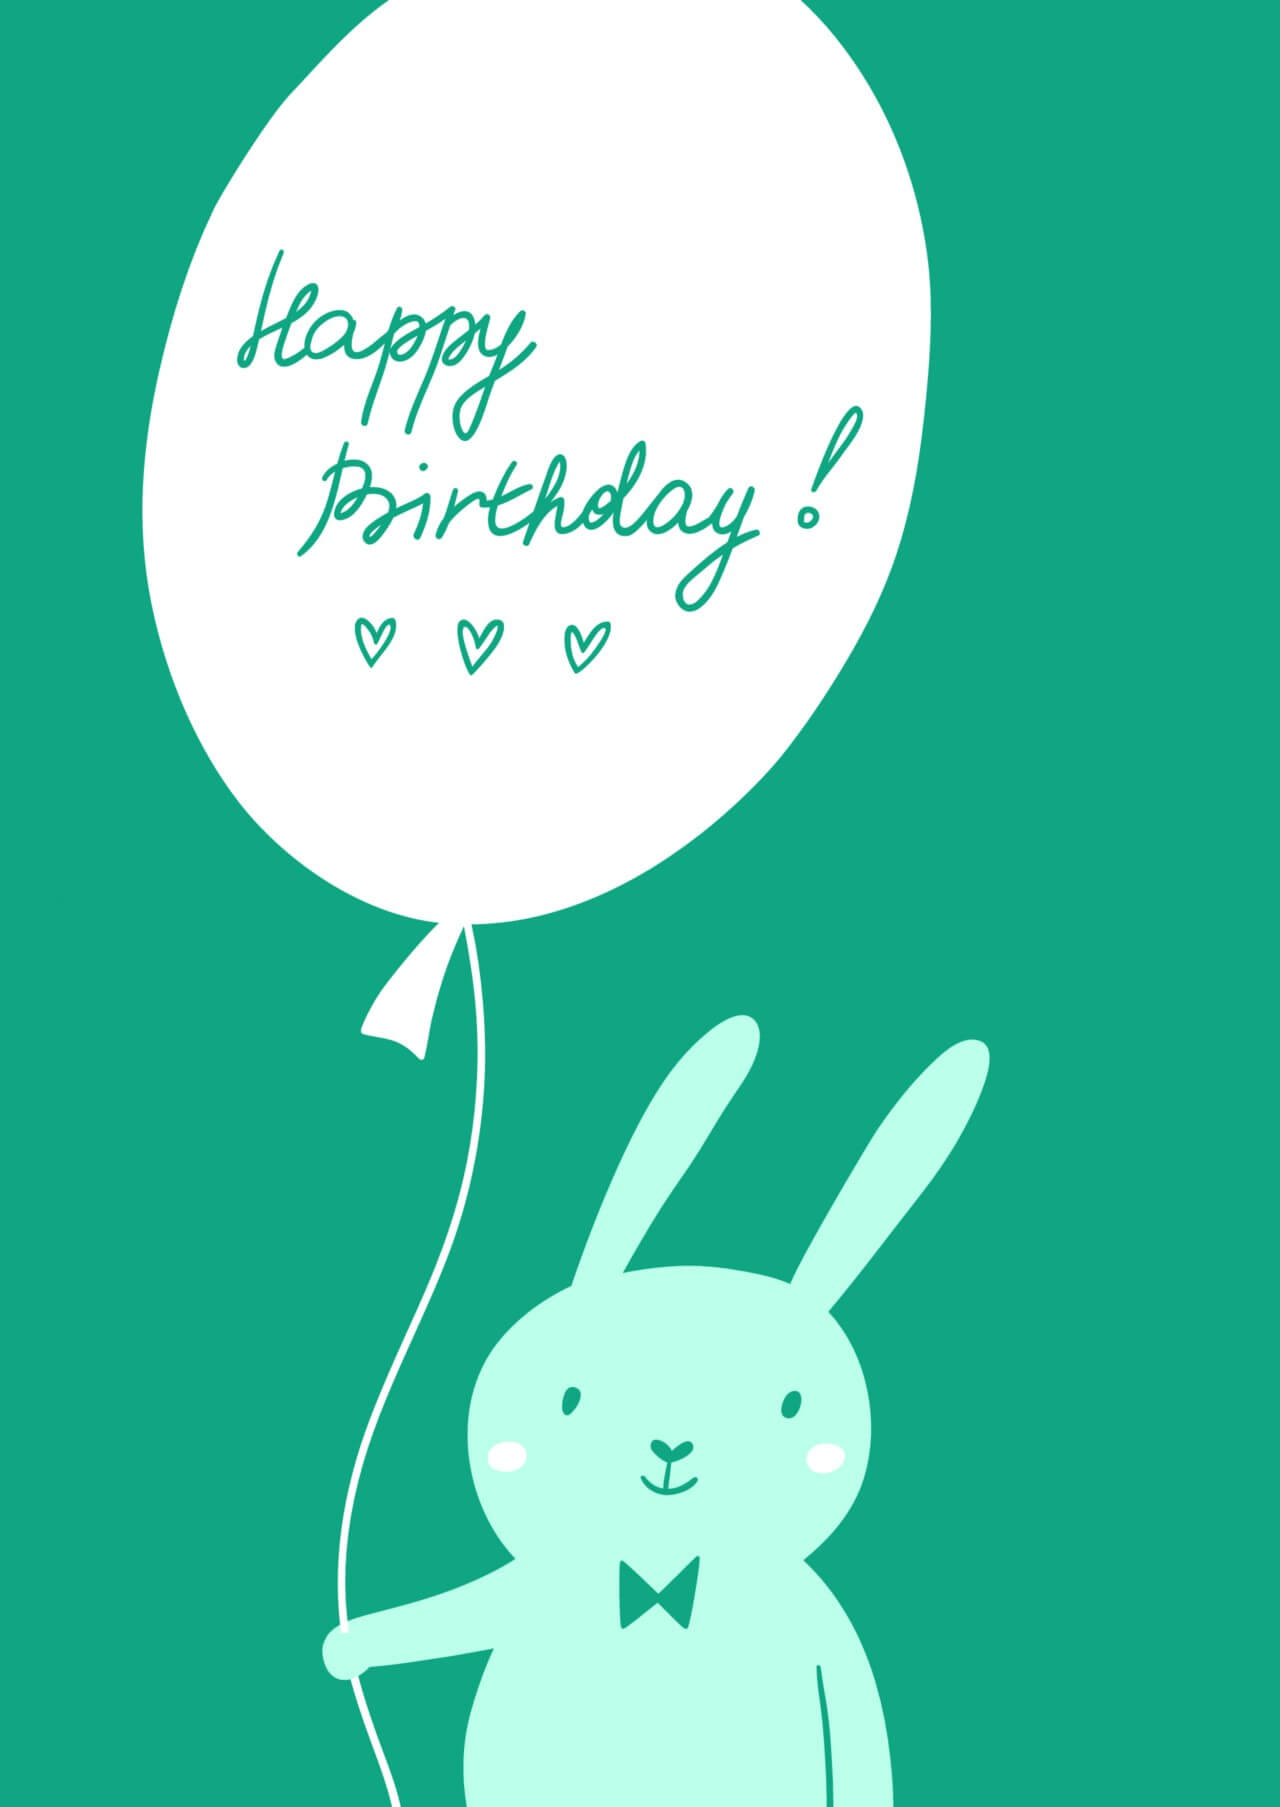 Free Vector Happy Birthday Card With Cute Bunny